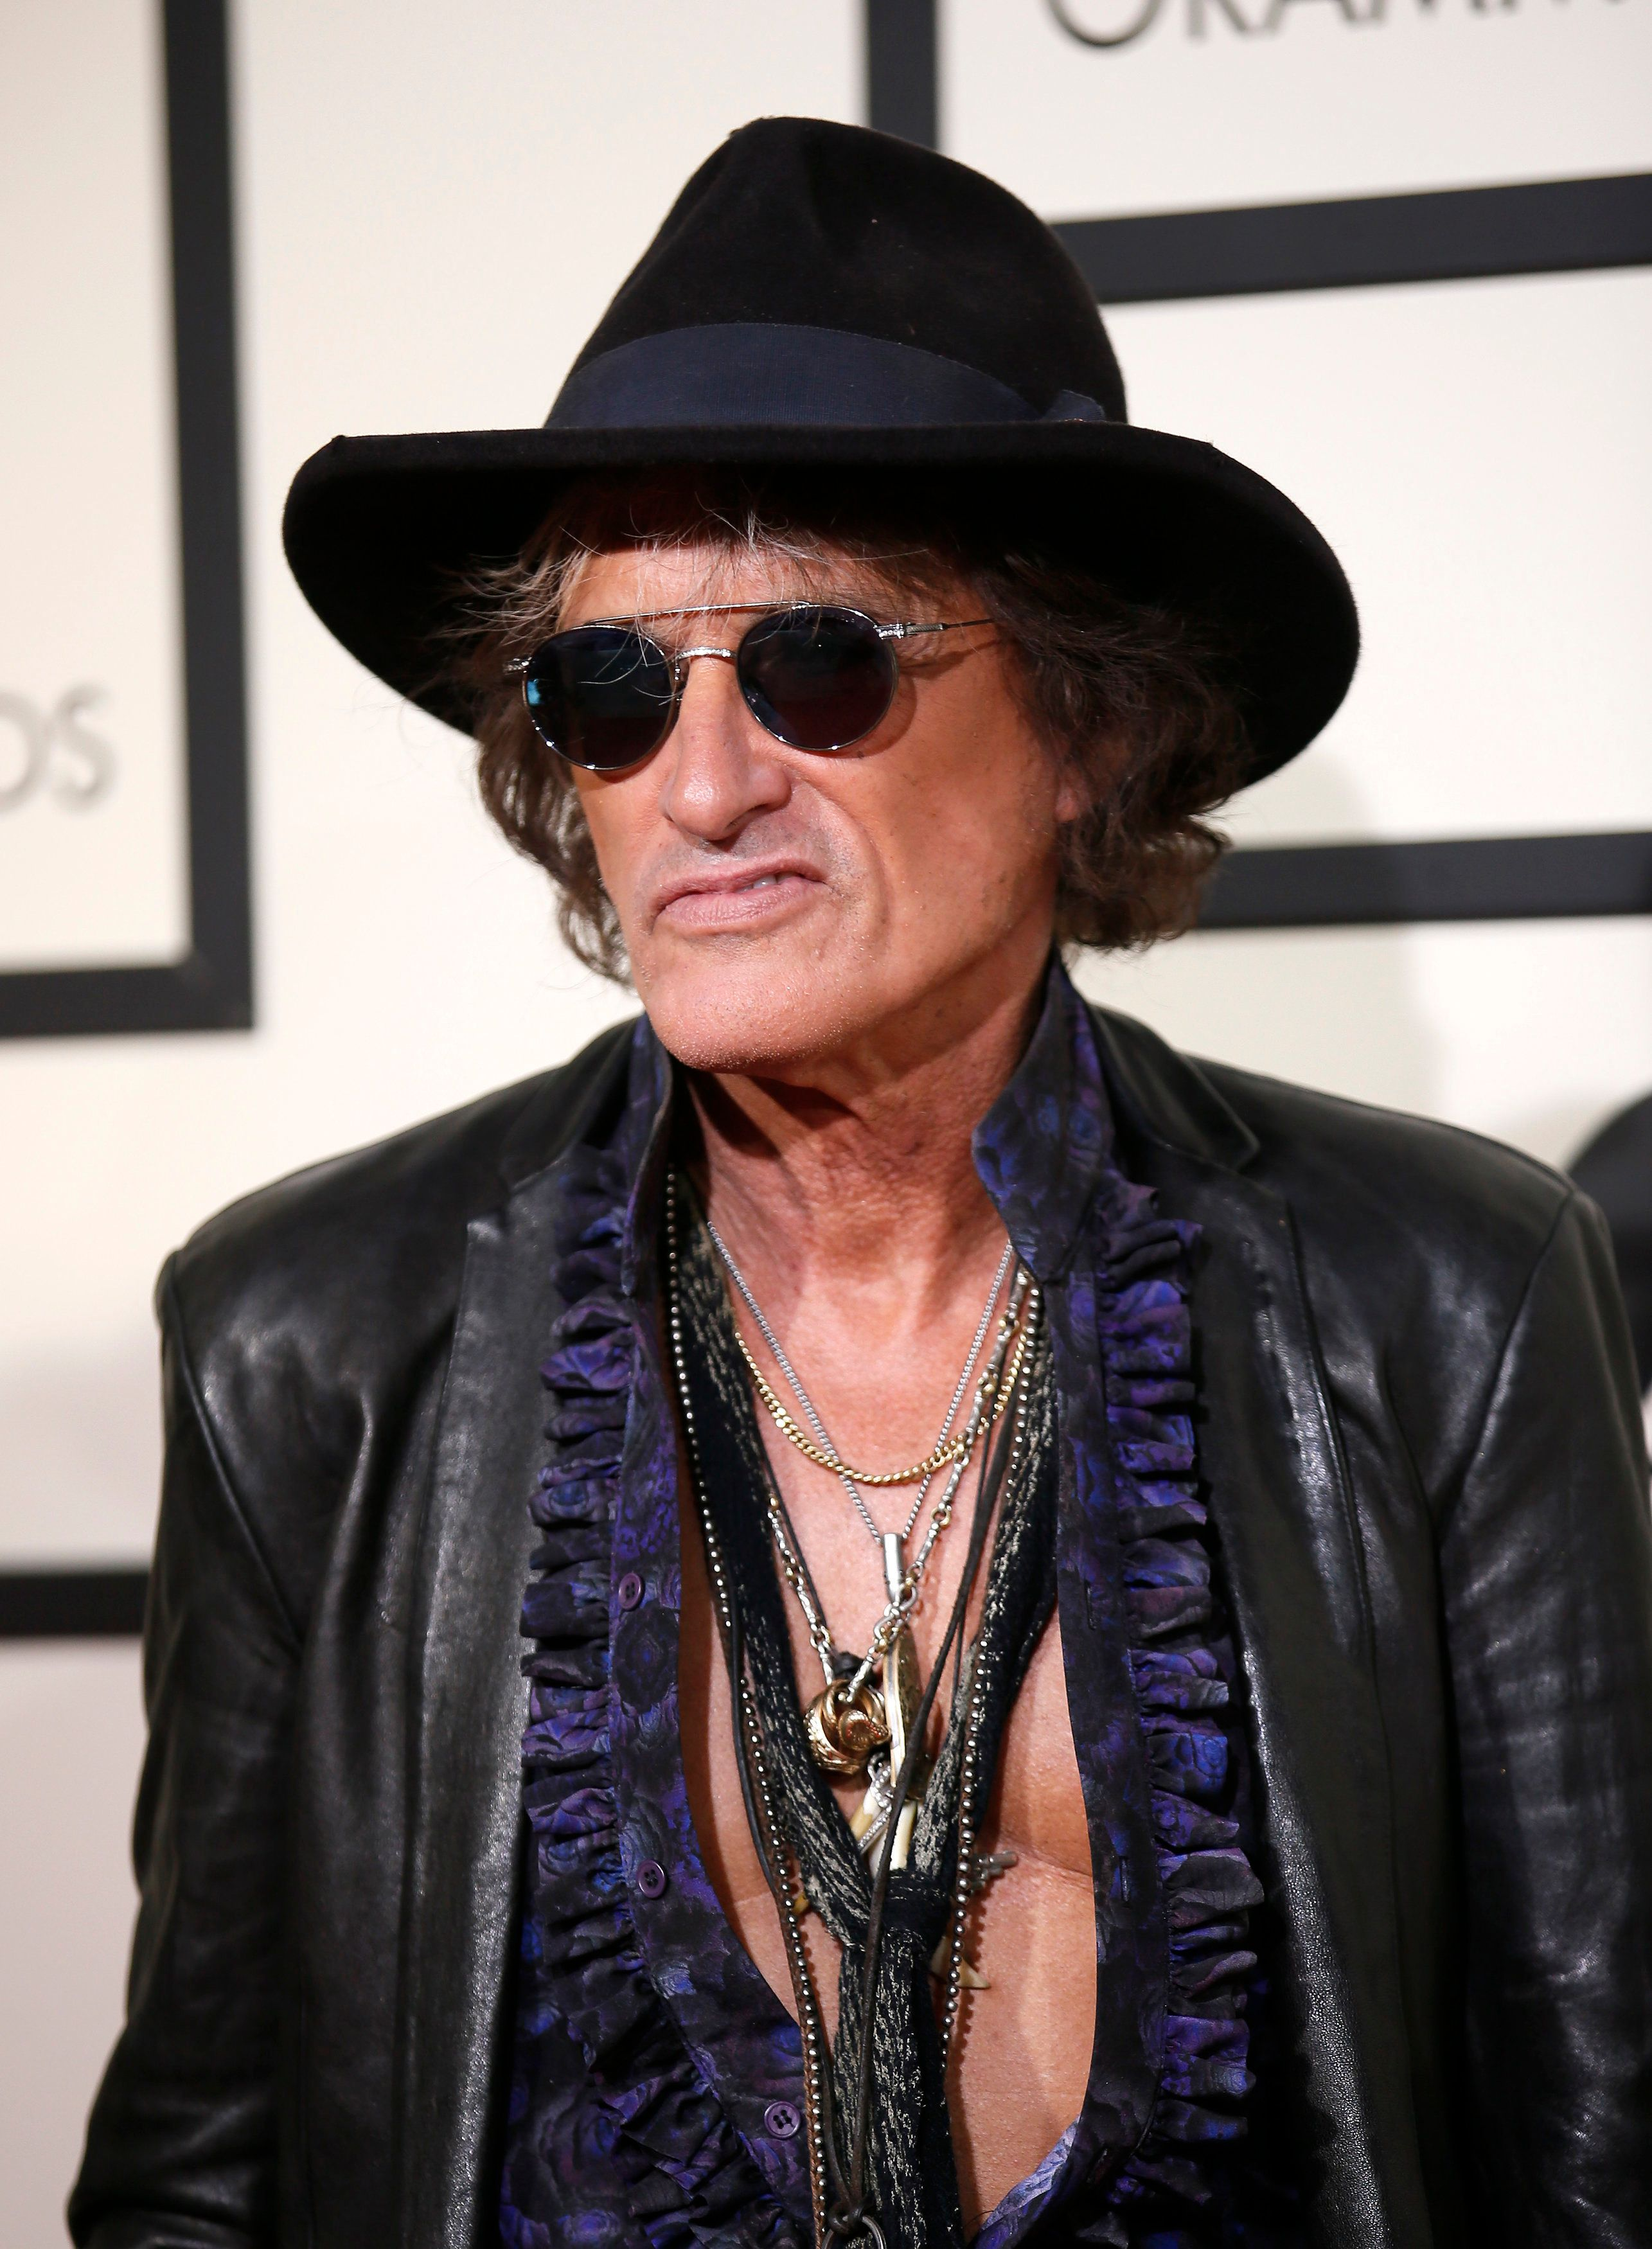 Musician Joe Perry arrives at the 58th Grammy Awards in Los Angeles, California February 15, 2016.  REUTERS/Danny Moloshok